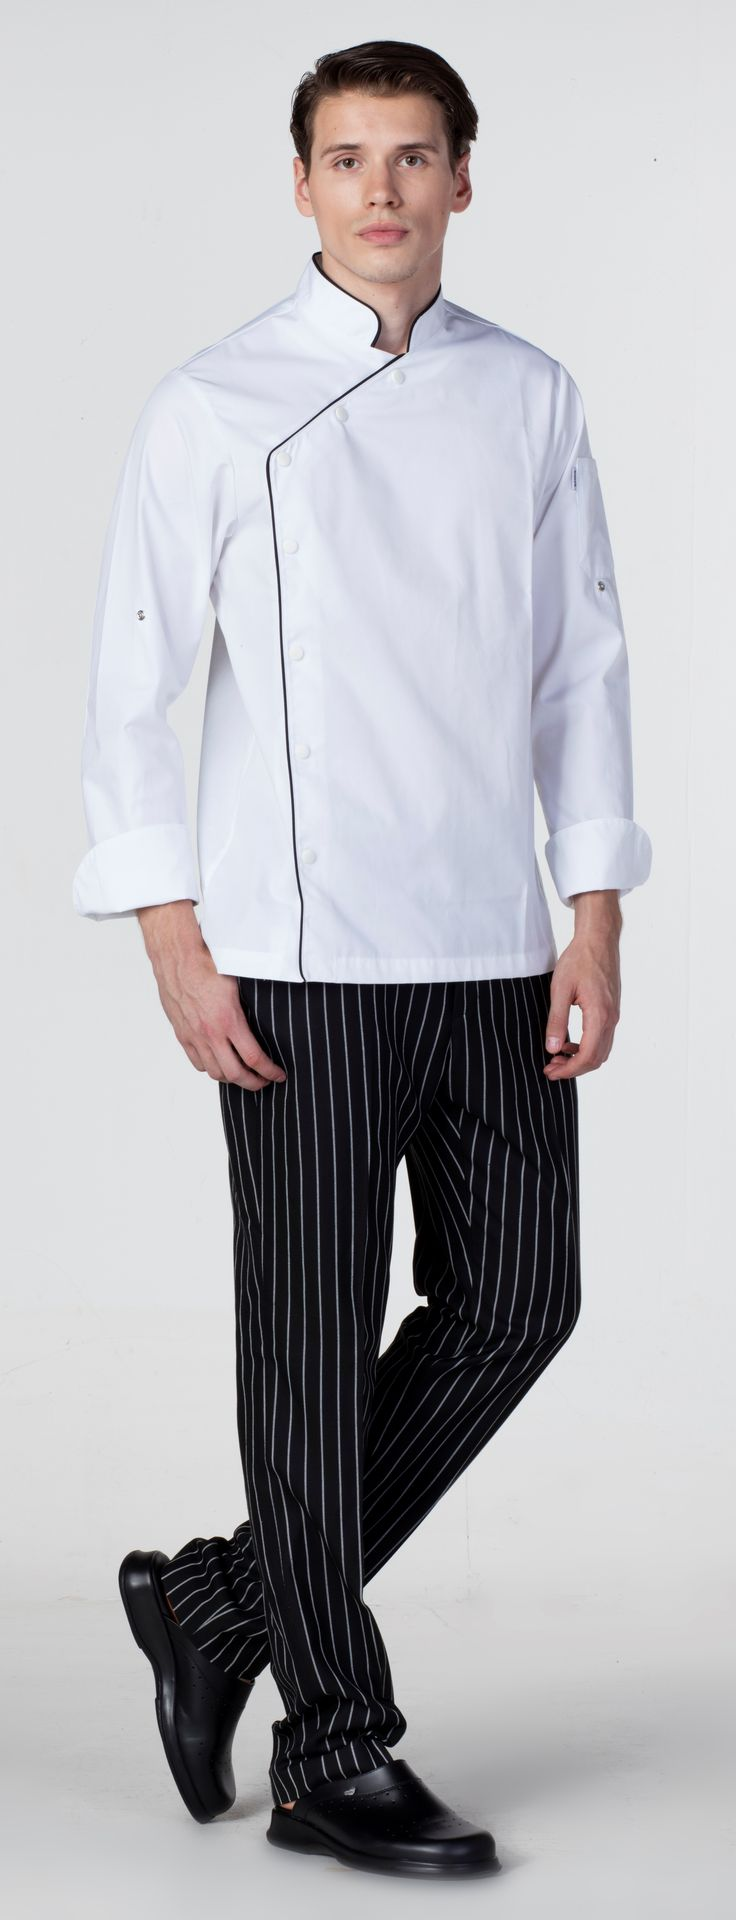 Chef Jacket and Trousers